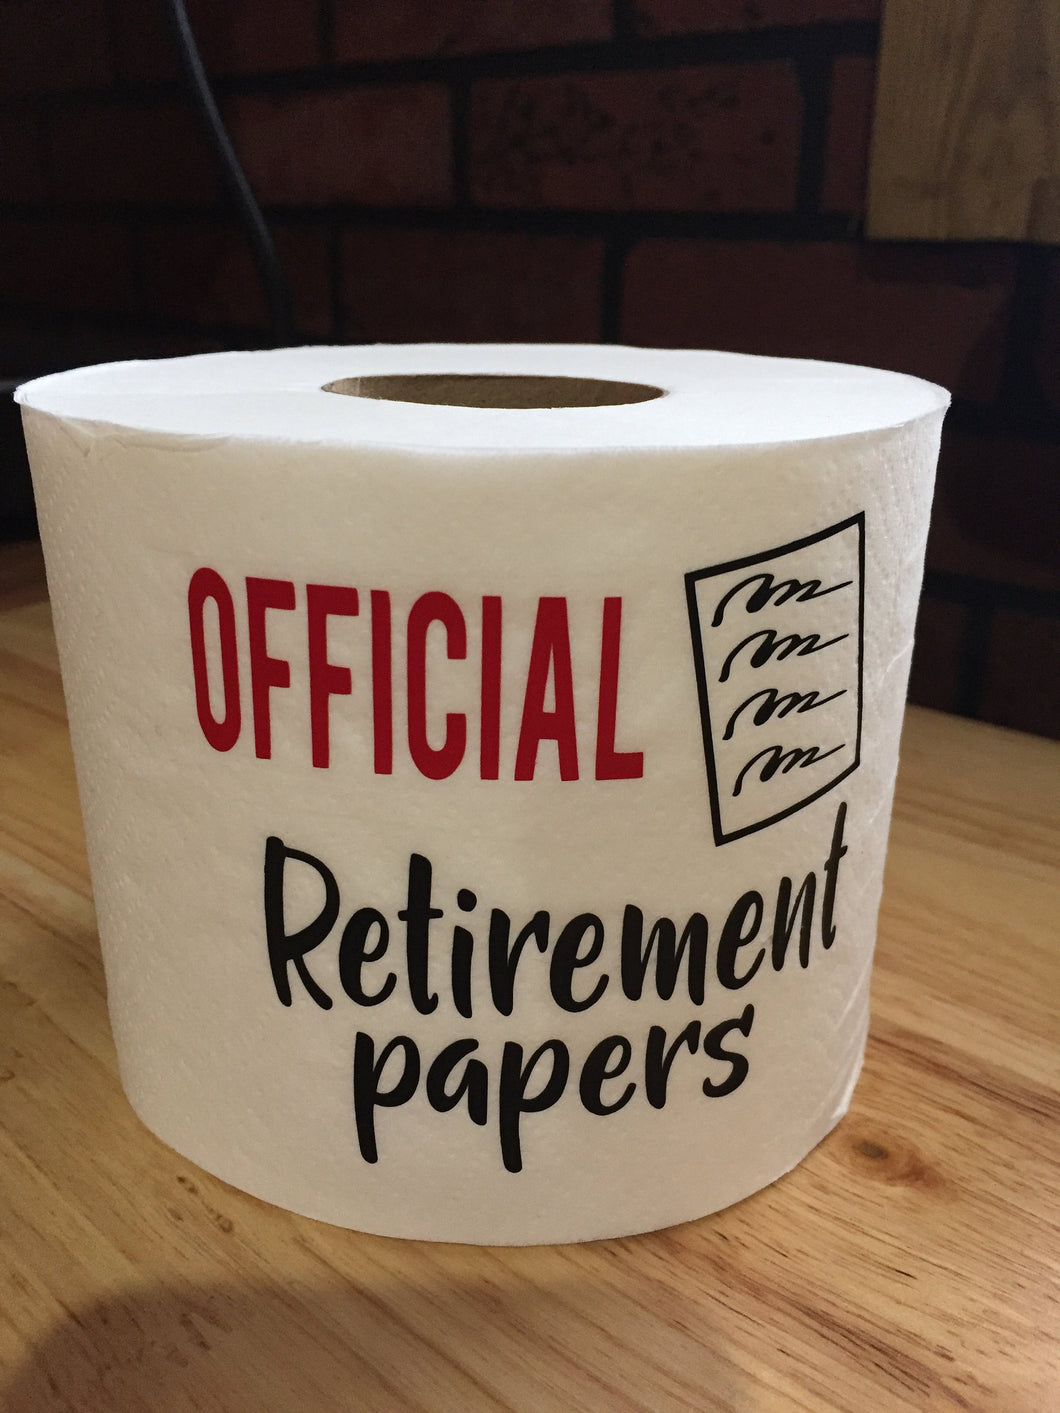 Funny Retirement Papers Gag Gift, Retirement Papers Funny Gag Gift, Gag Gift Funny Retirement Papers, Funny Retirement Gift Idea, Funny Gift